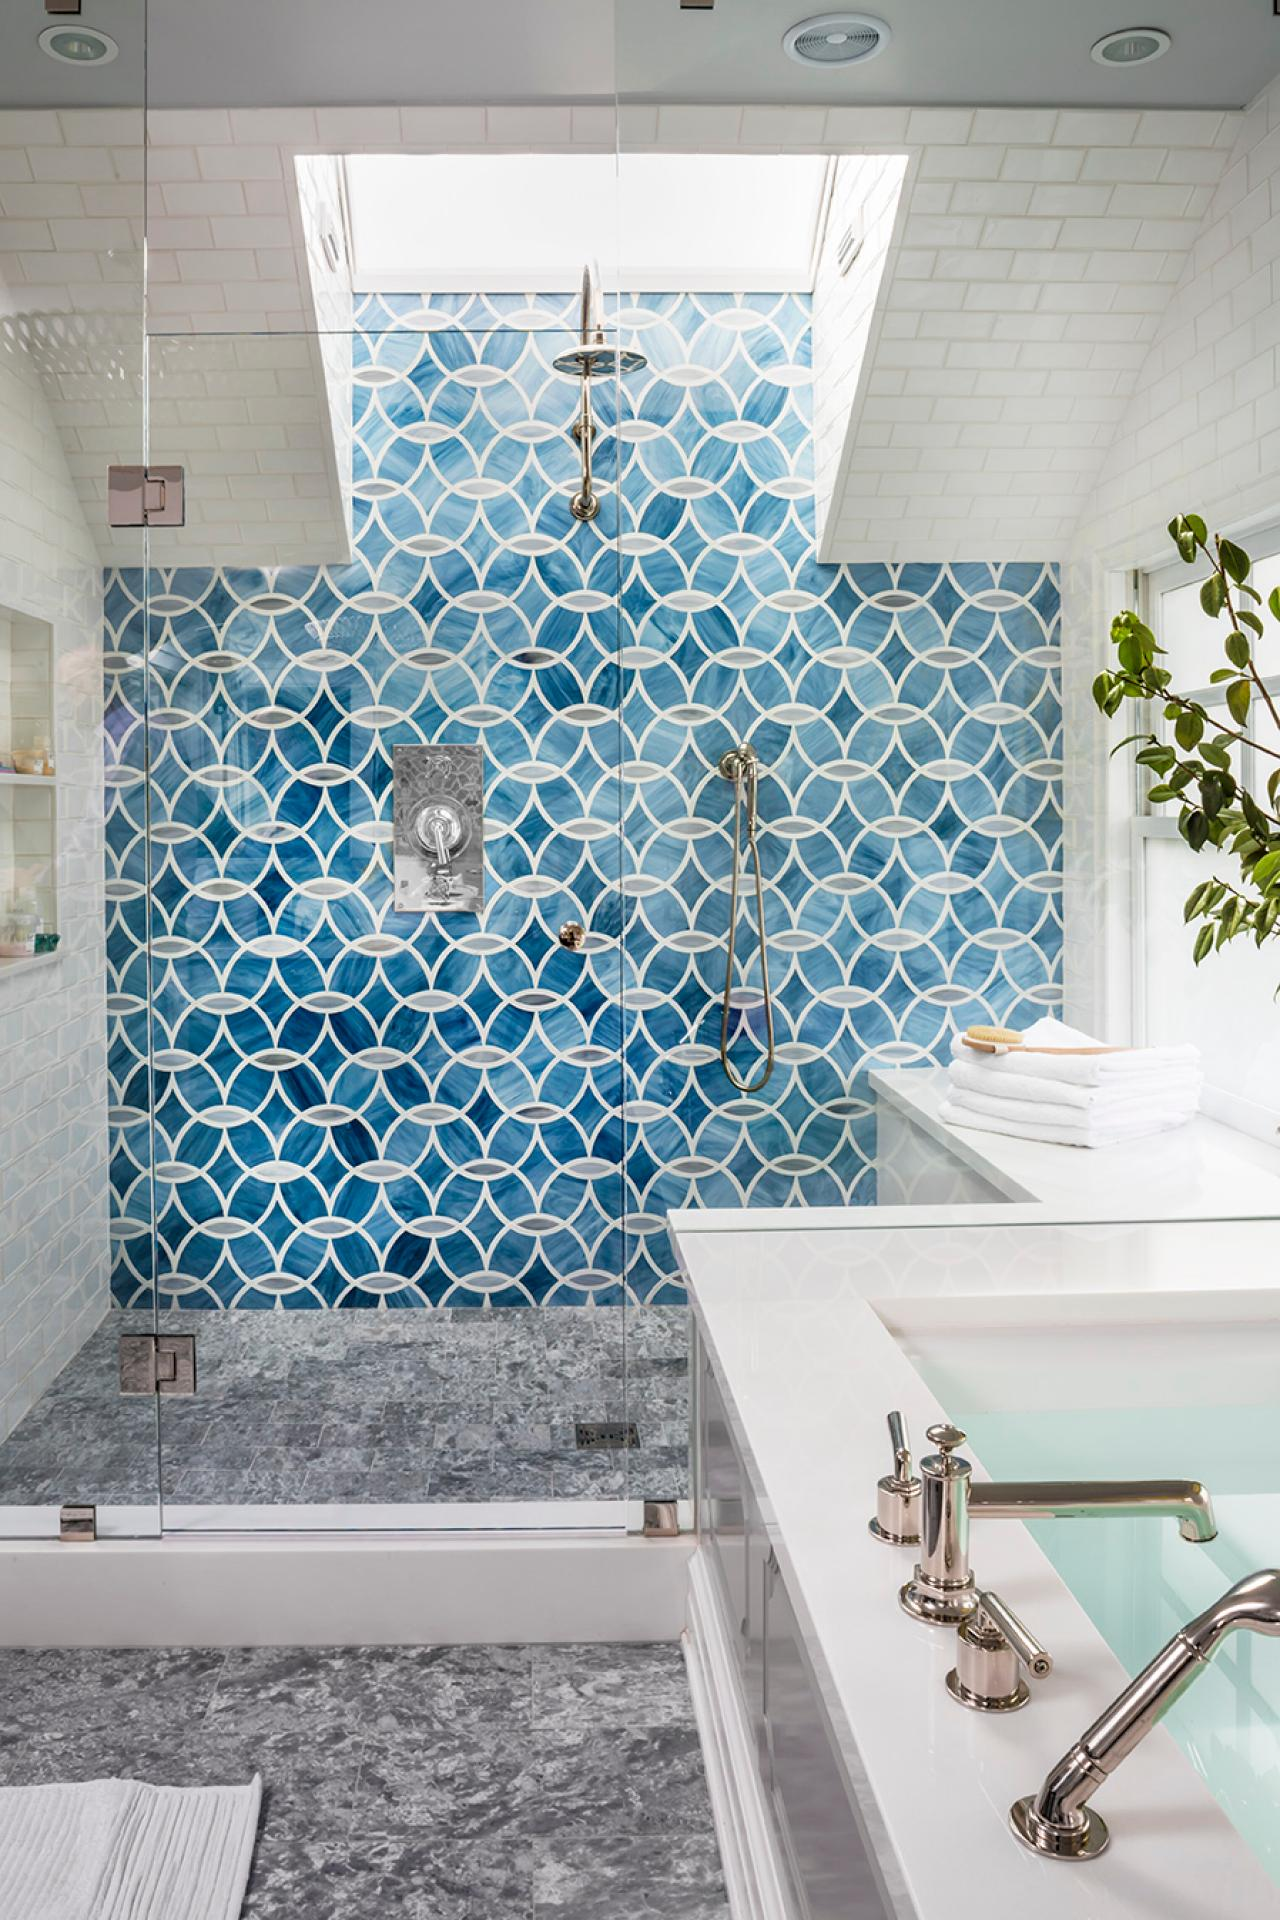 Top 20 bathroom tile trends of 2017 hgtv 39 s decorating Different design and colors of tiles